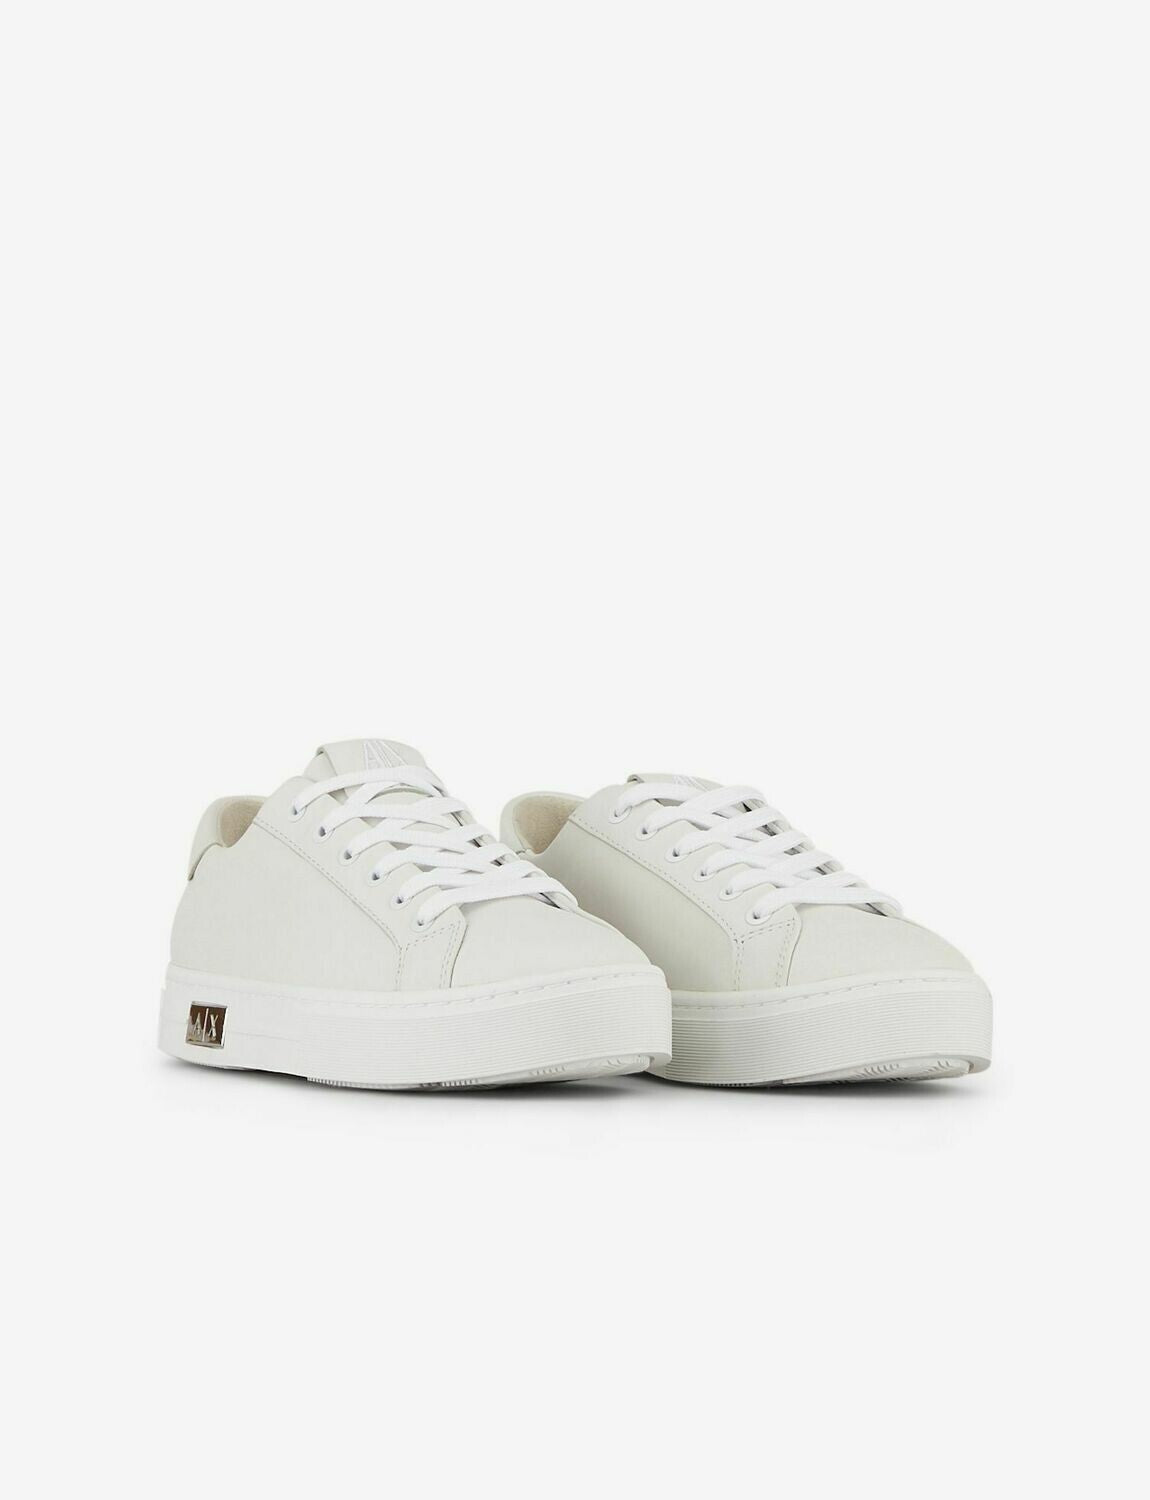 ARMANI EXCHANGE Sneakers - White